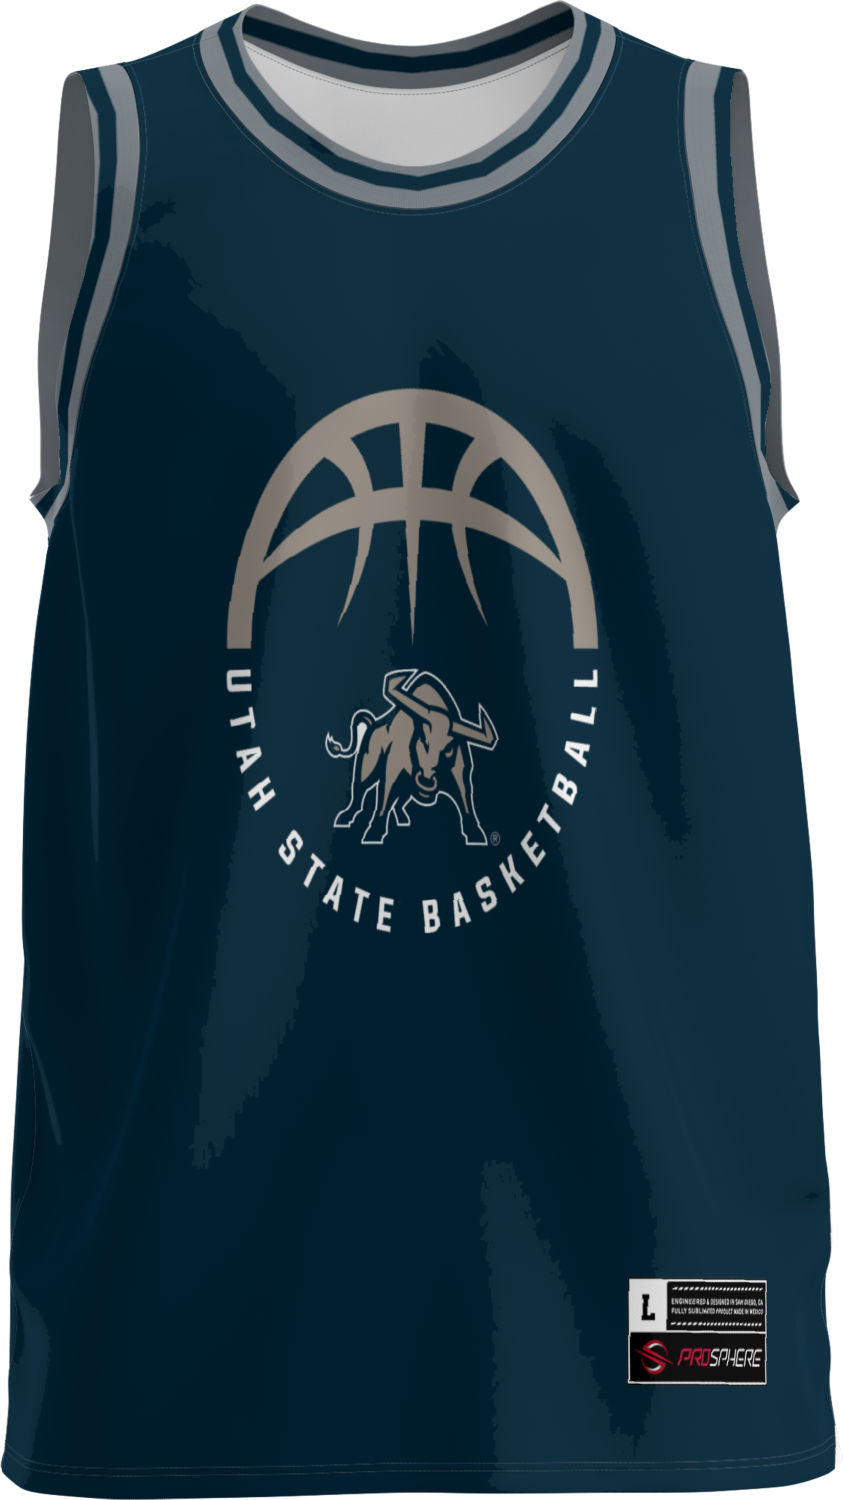 USU Basketball Youth Replica Fan Jersey - Retro